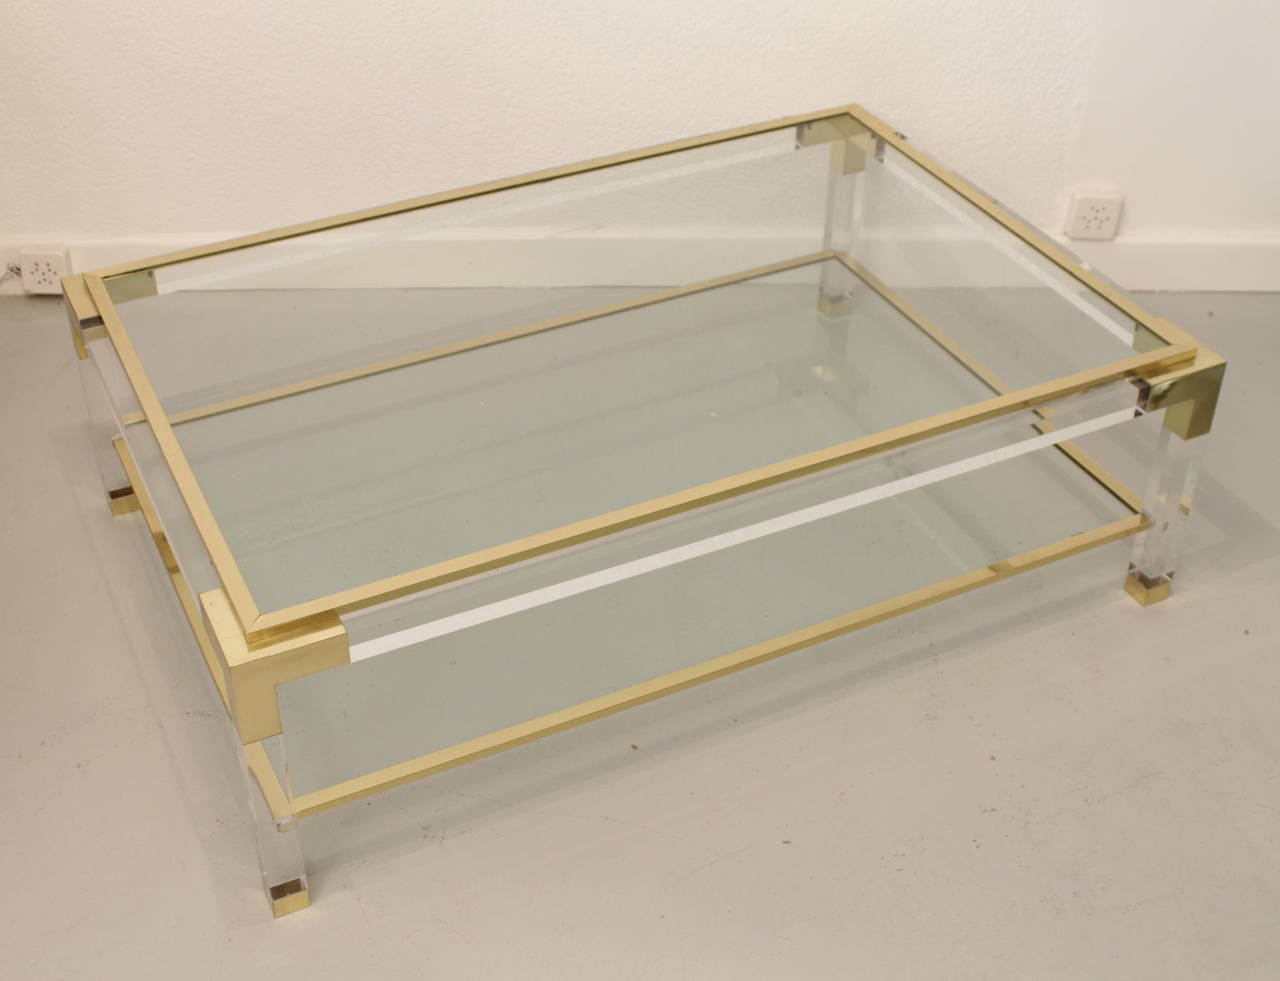 Vintage brass lucite and glass coffee table at 1stdibs Antique brass coffee table